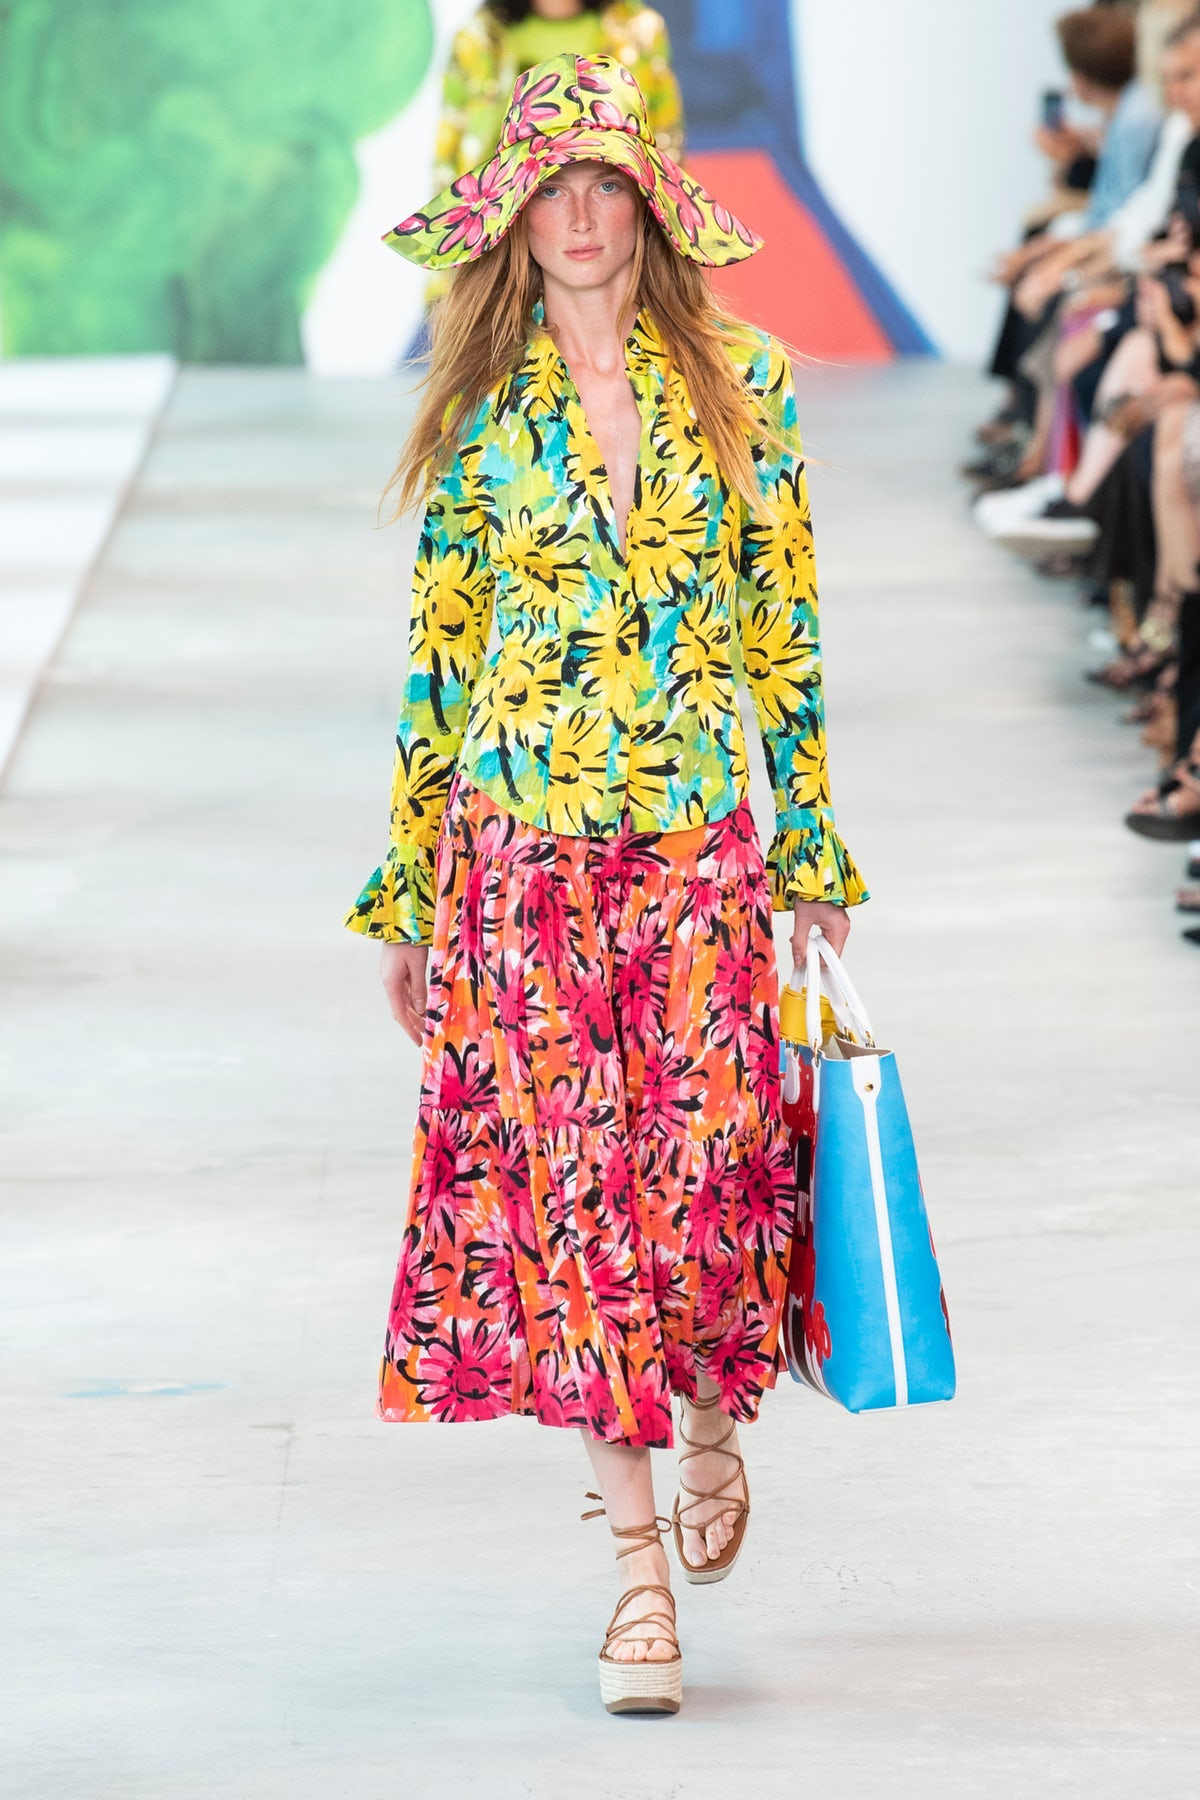 Michael Kors Spring/Summer 2019 | Source: Indigital.tv